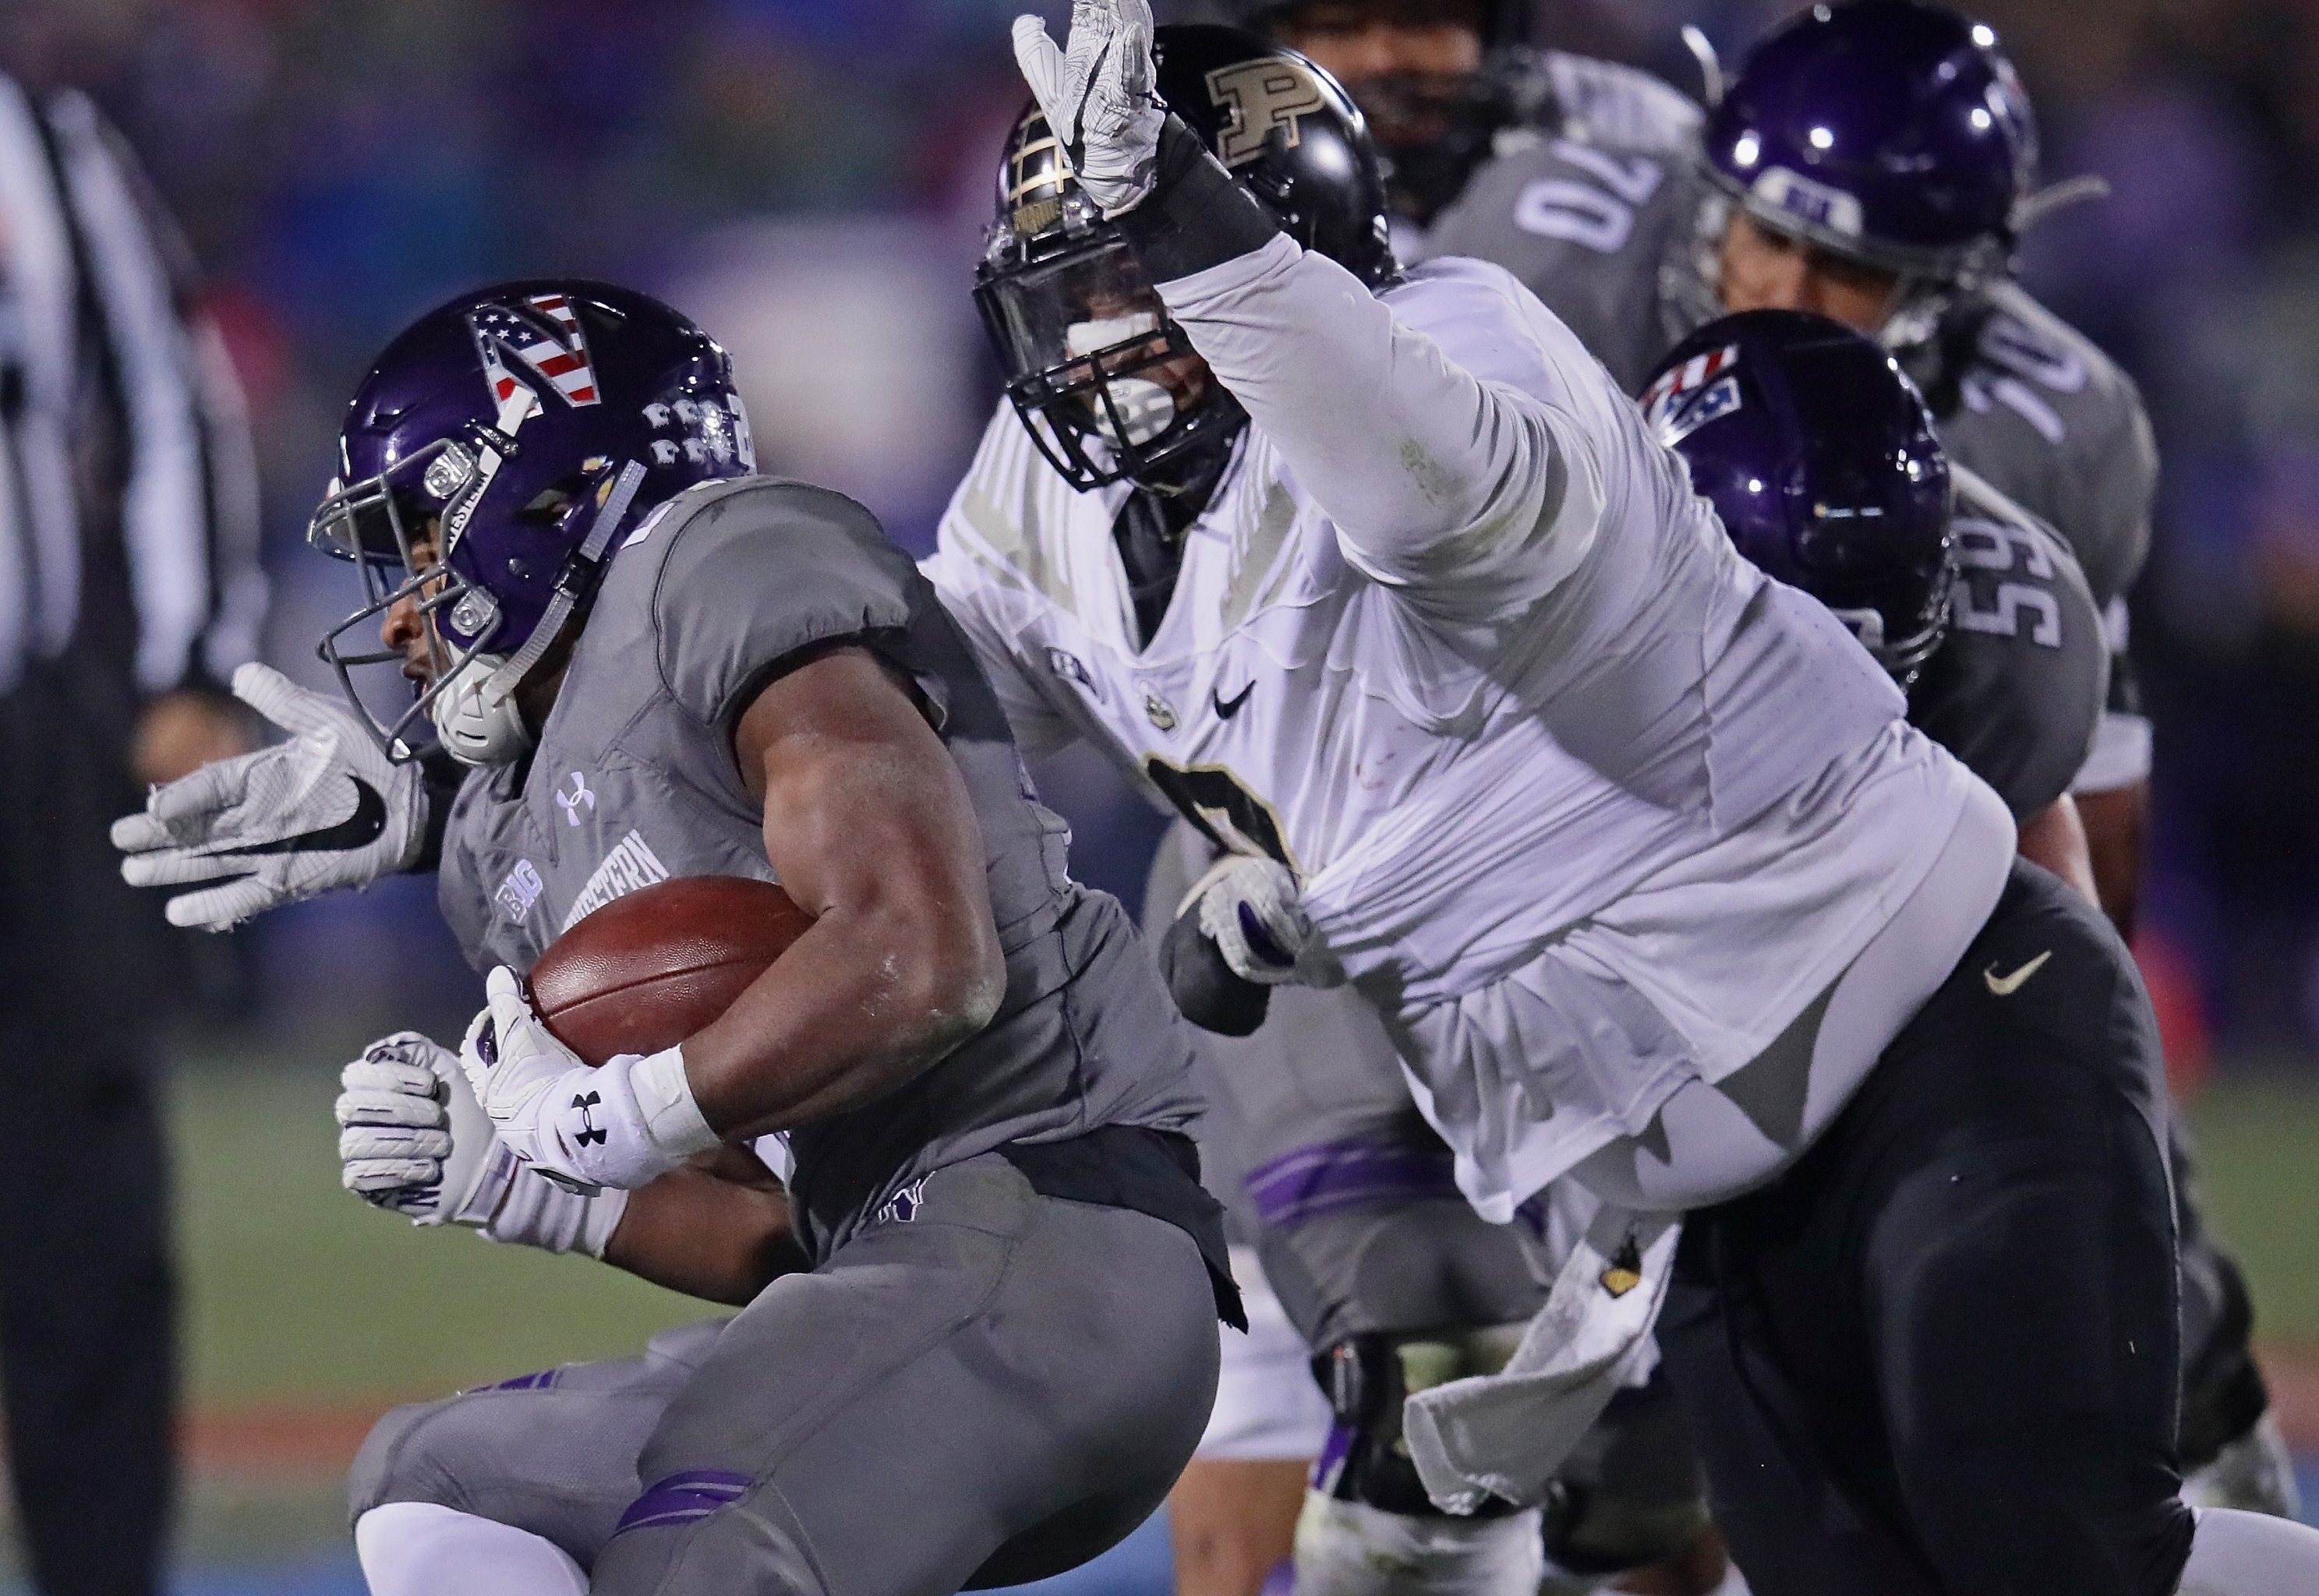 Winners and Losers from Week 1 of College Football